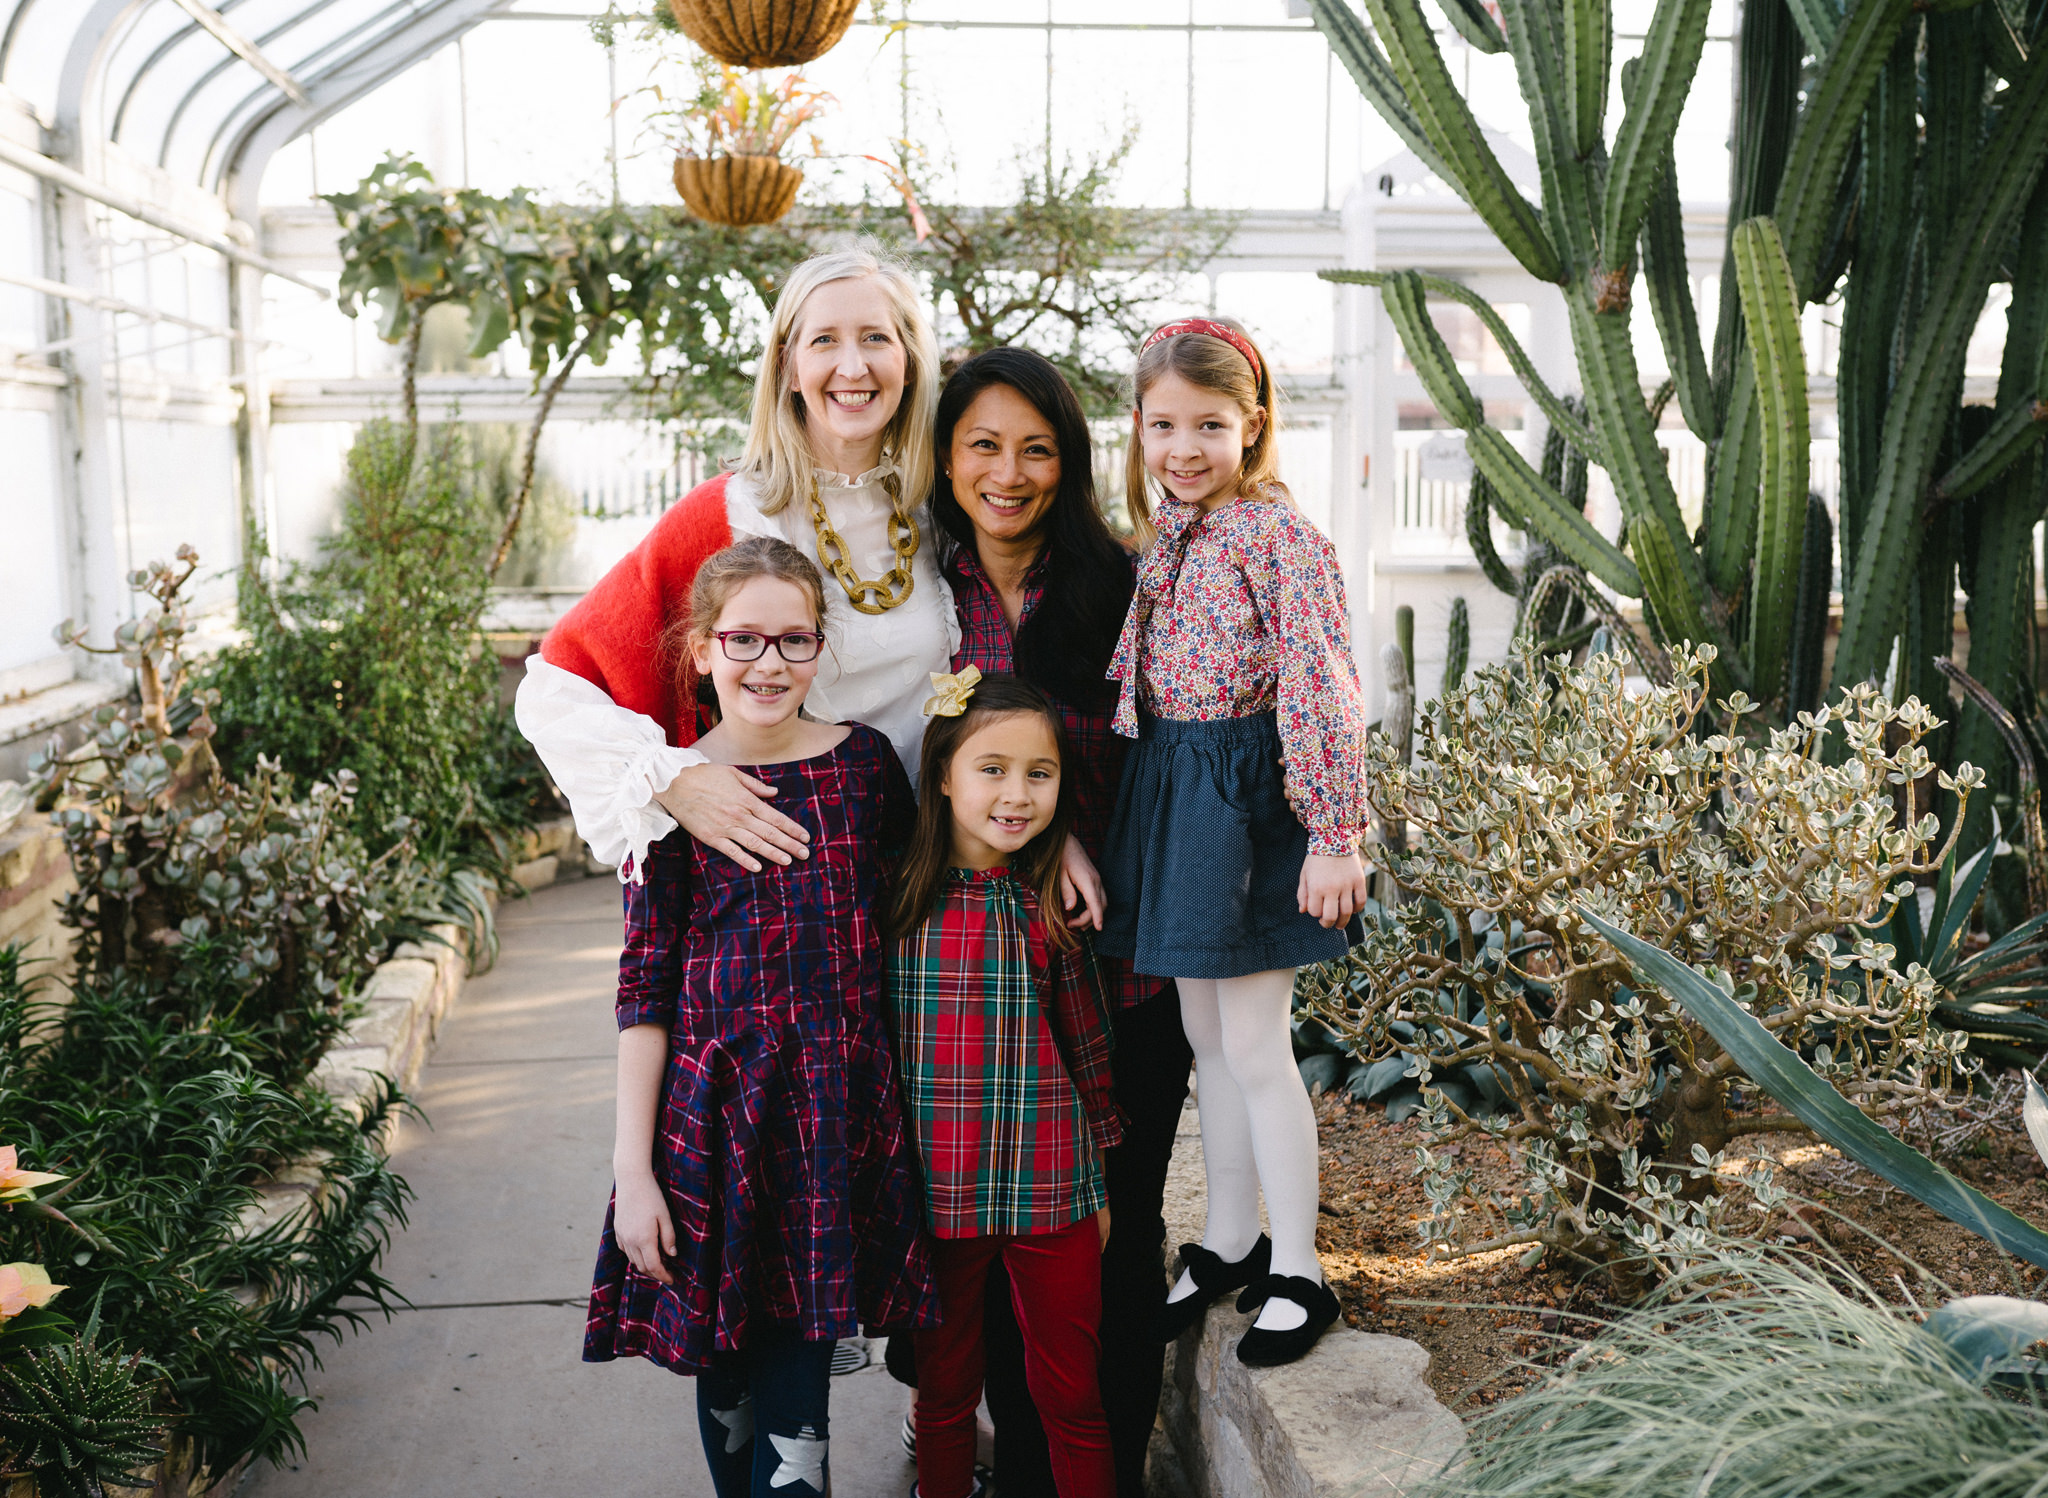 006-rempel-photography-chicago-wedding-inspiration-oak-park-conservatory-family-photo-session-bailey-forest-park-berwin-area-photographers.jpg